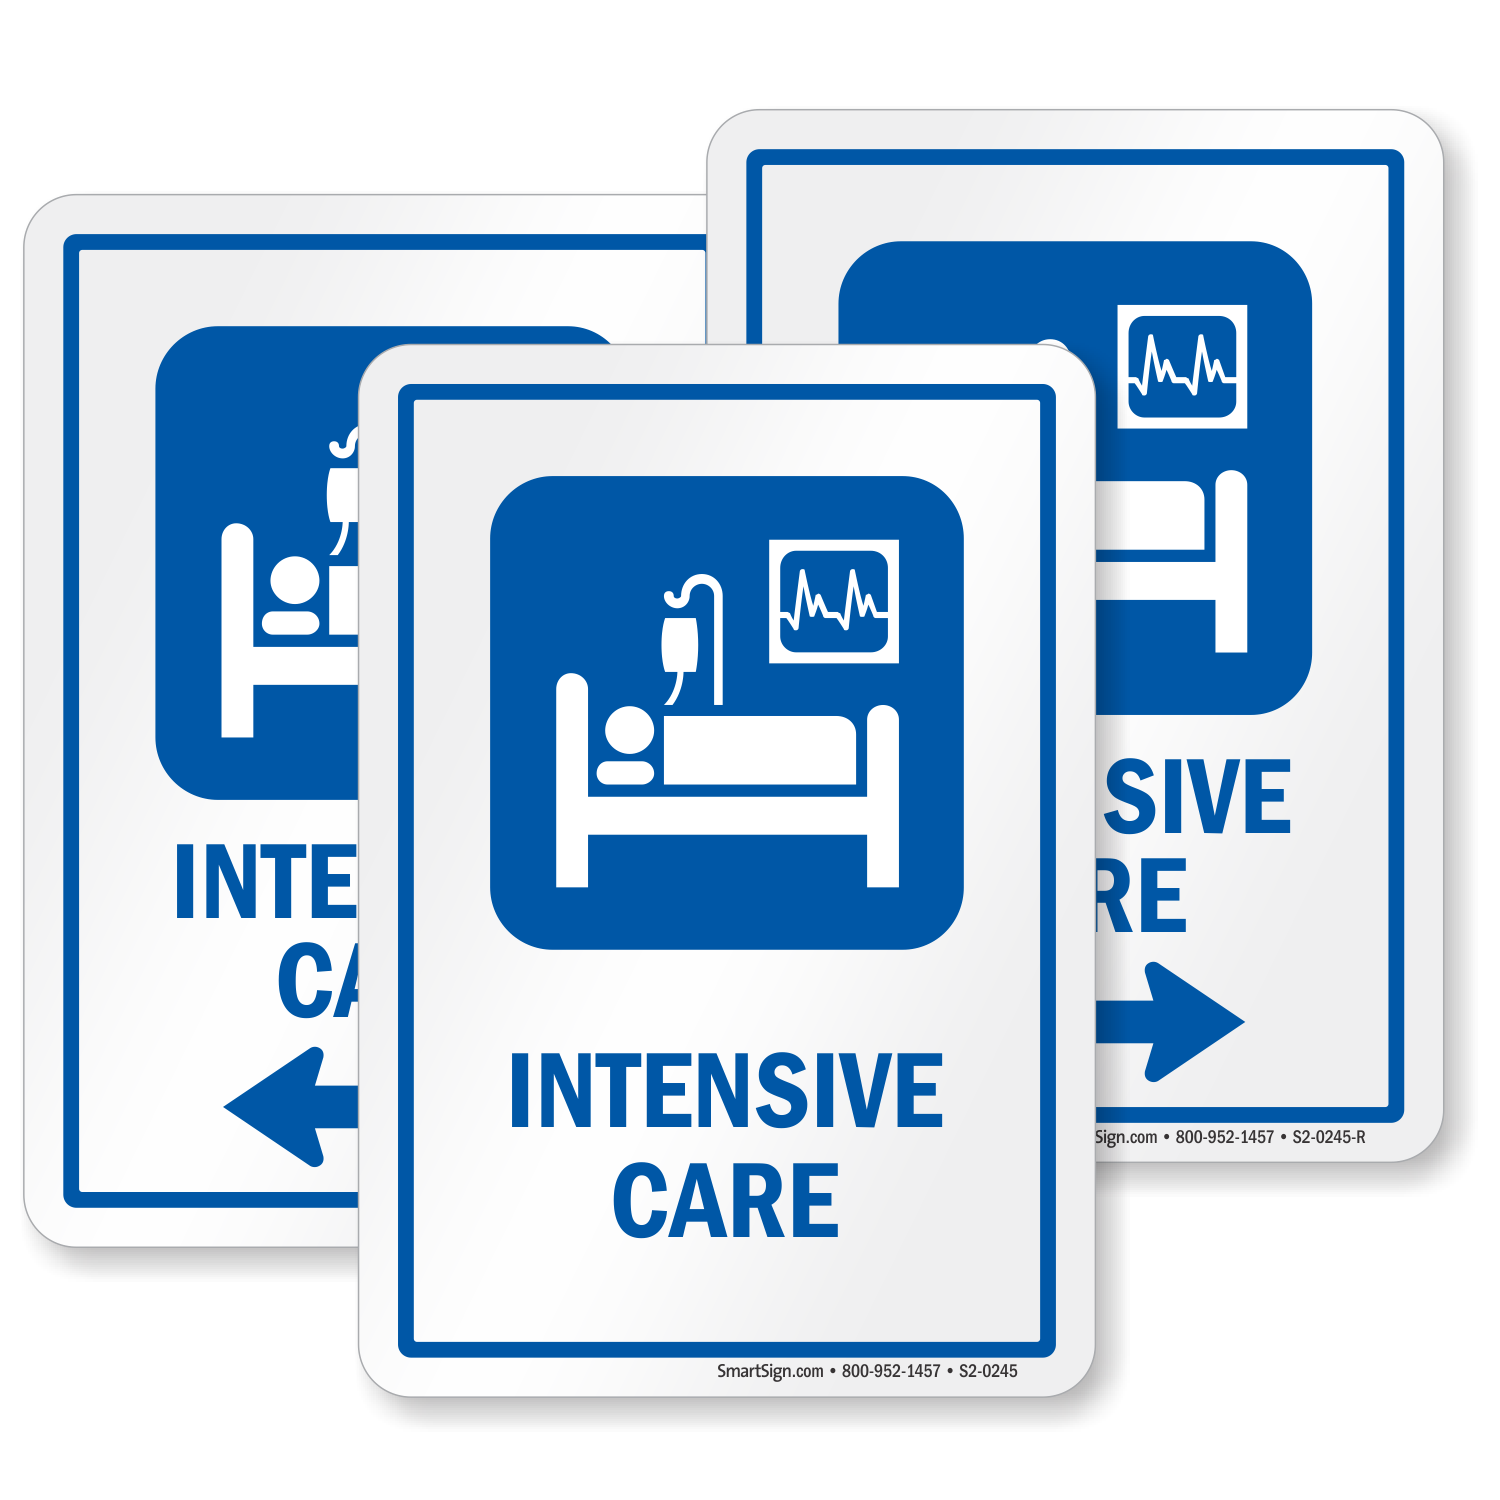 Intensive Care Hospital Icu Sign Patient On Drip Icu